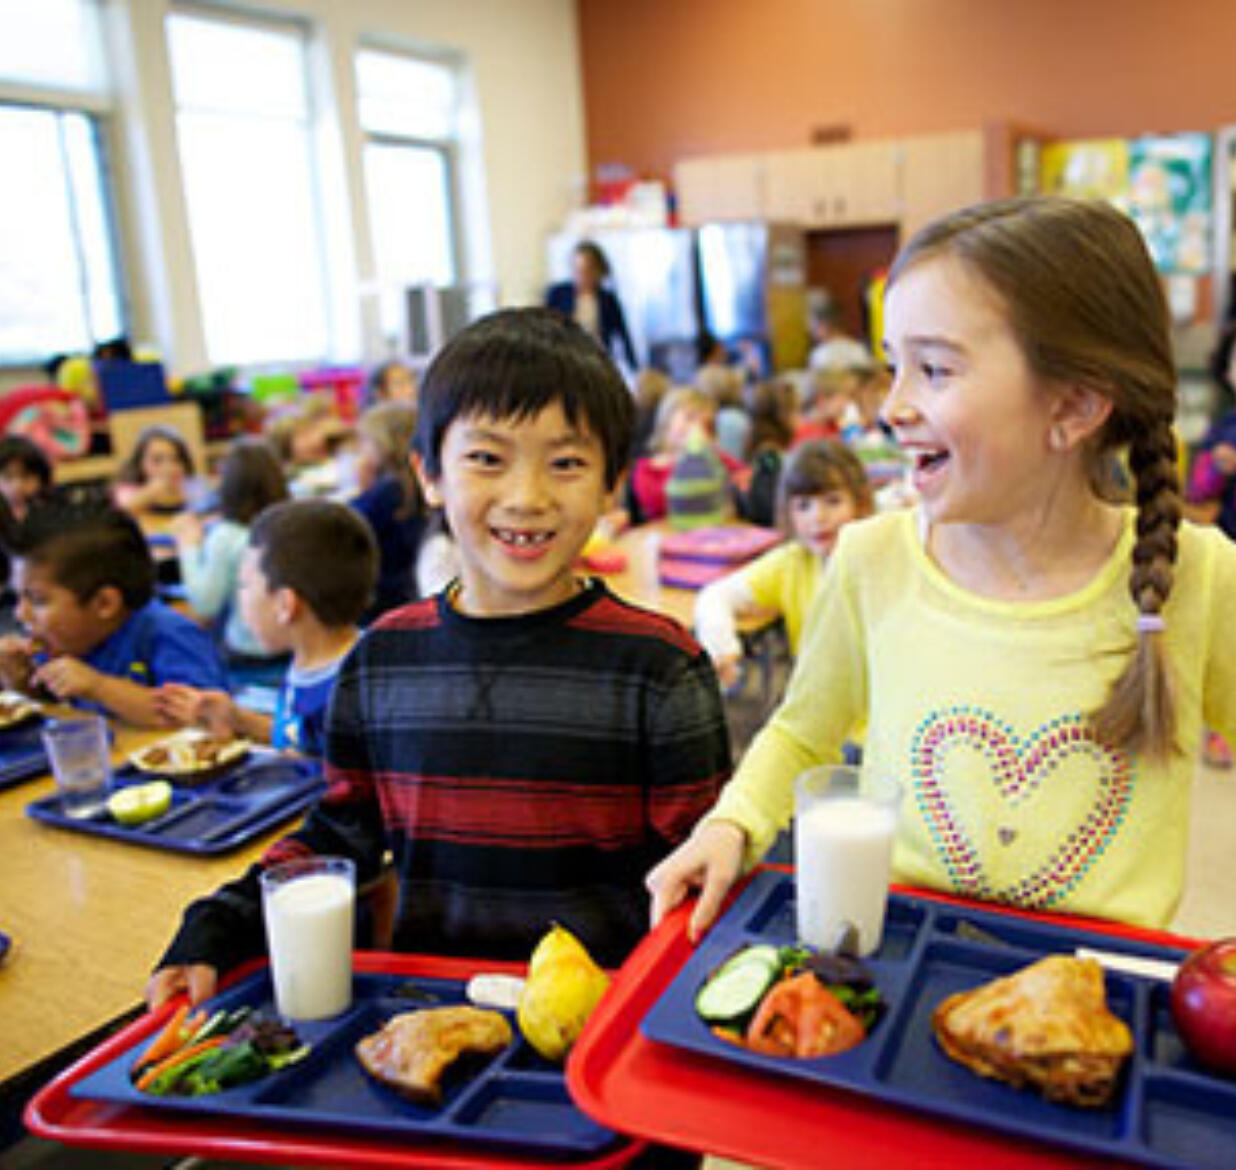 Opting In to Support Healthy School Food for All Children